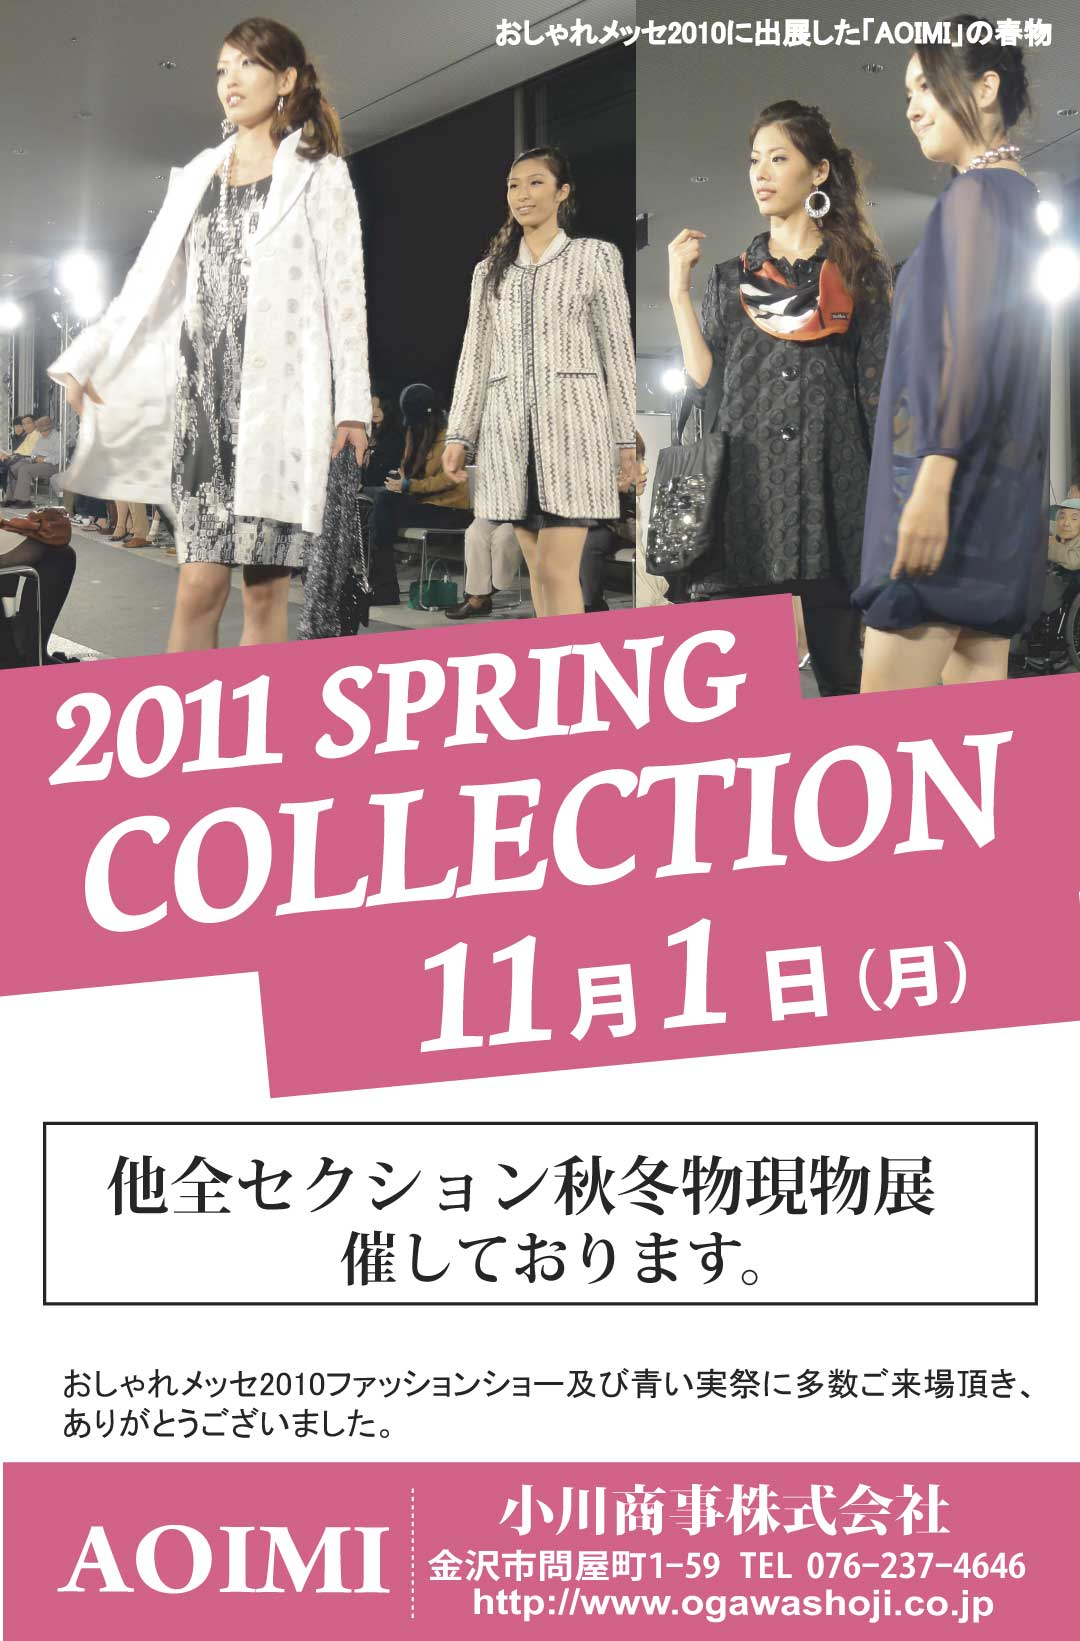 2010.11.1SPRING%20COLLECTION.jpg